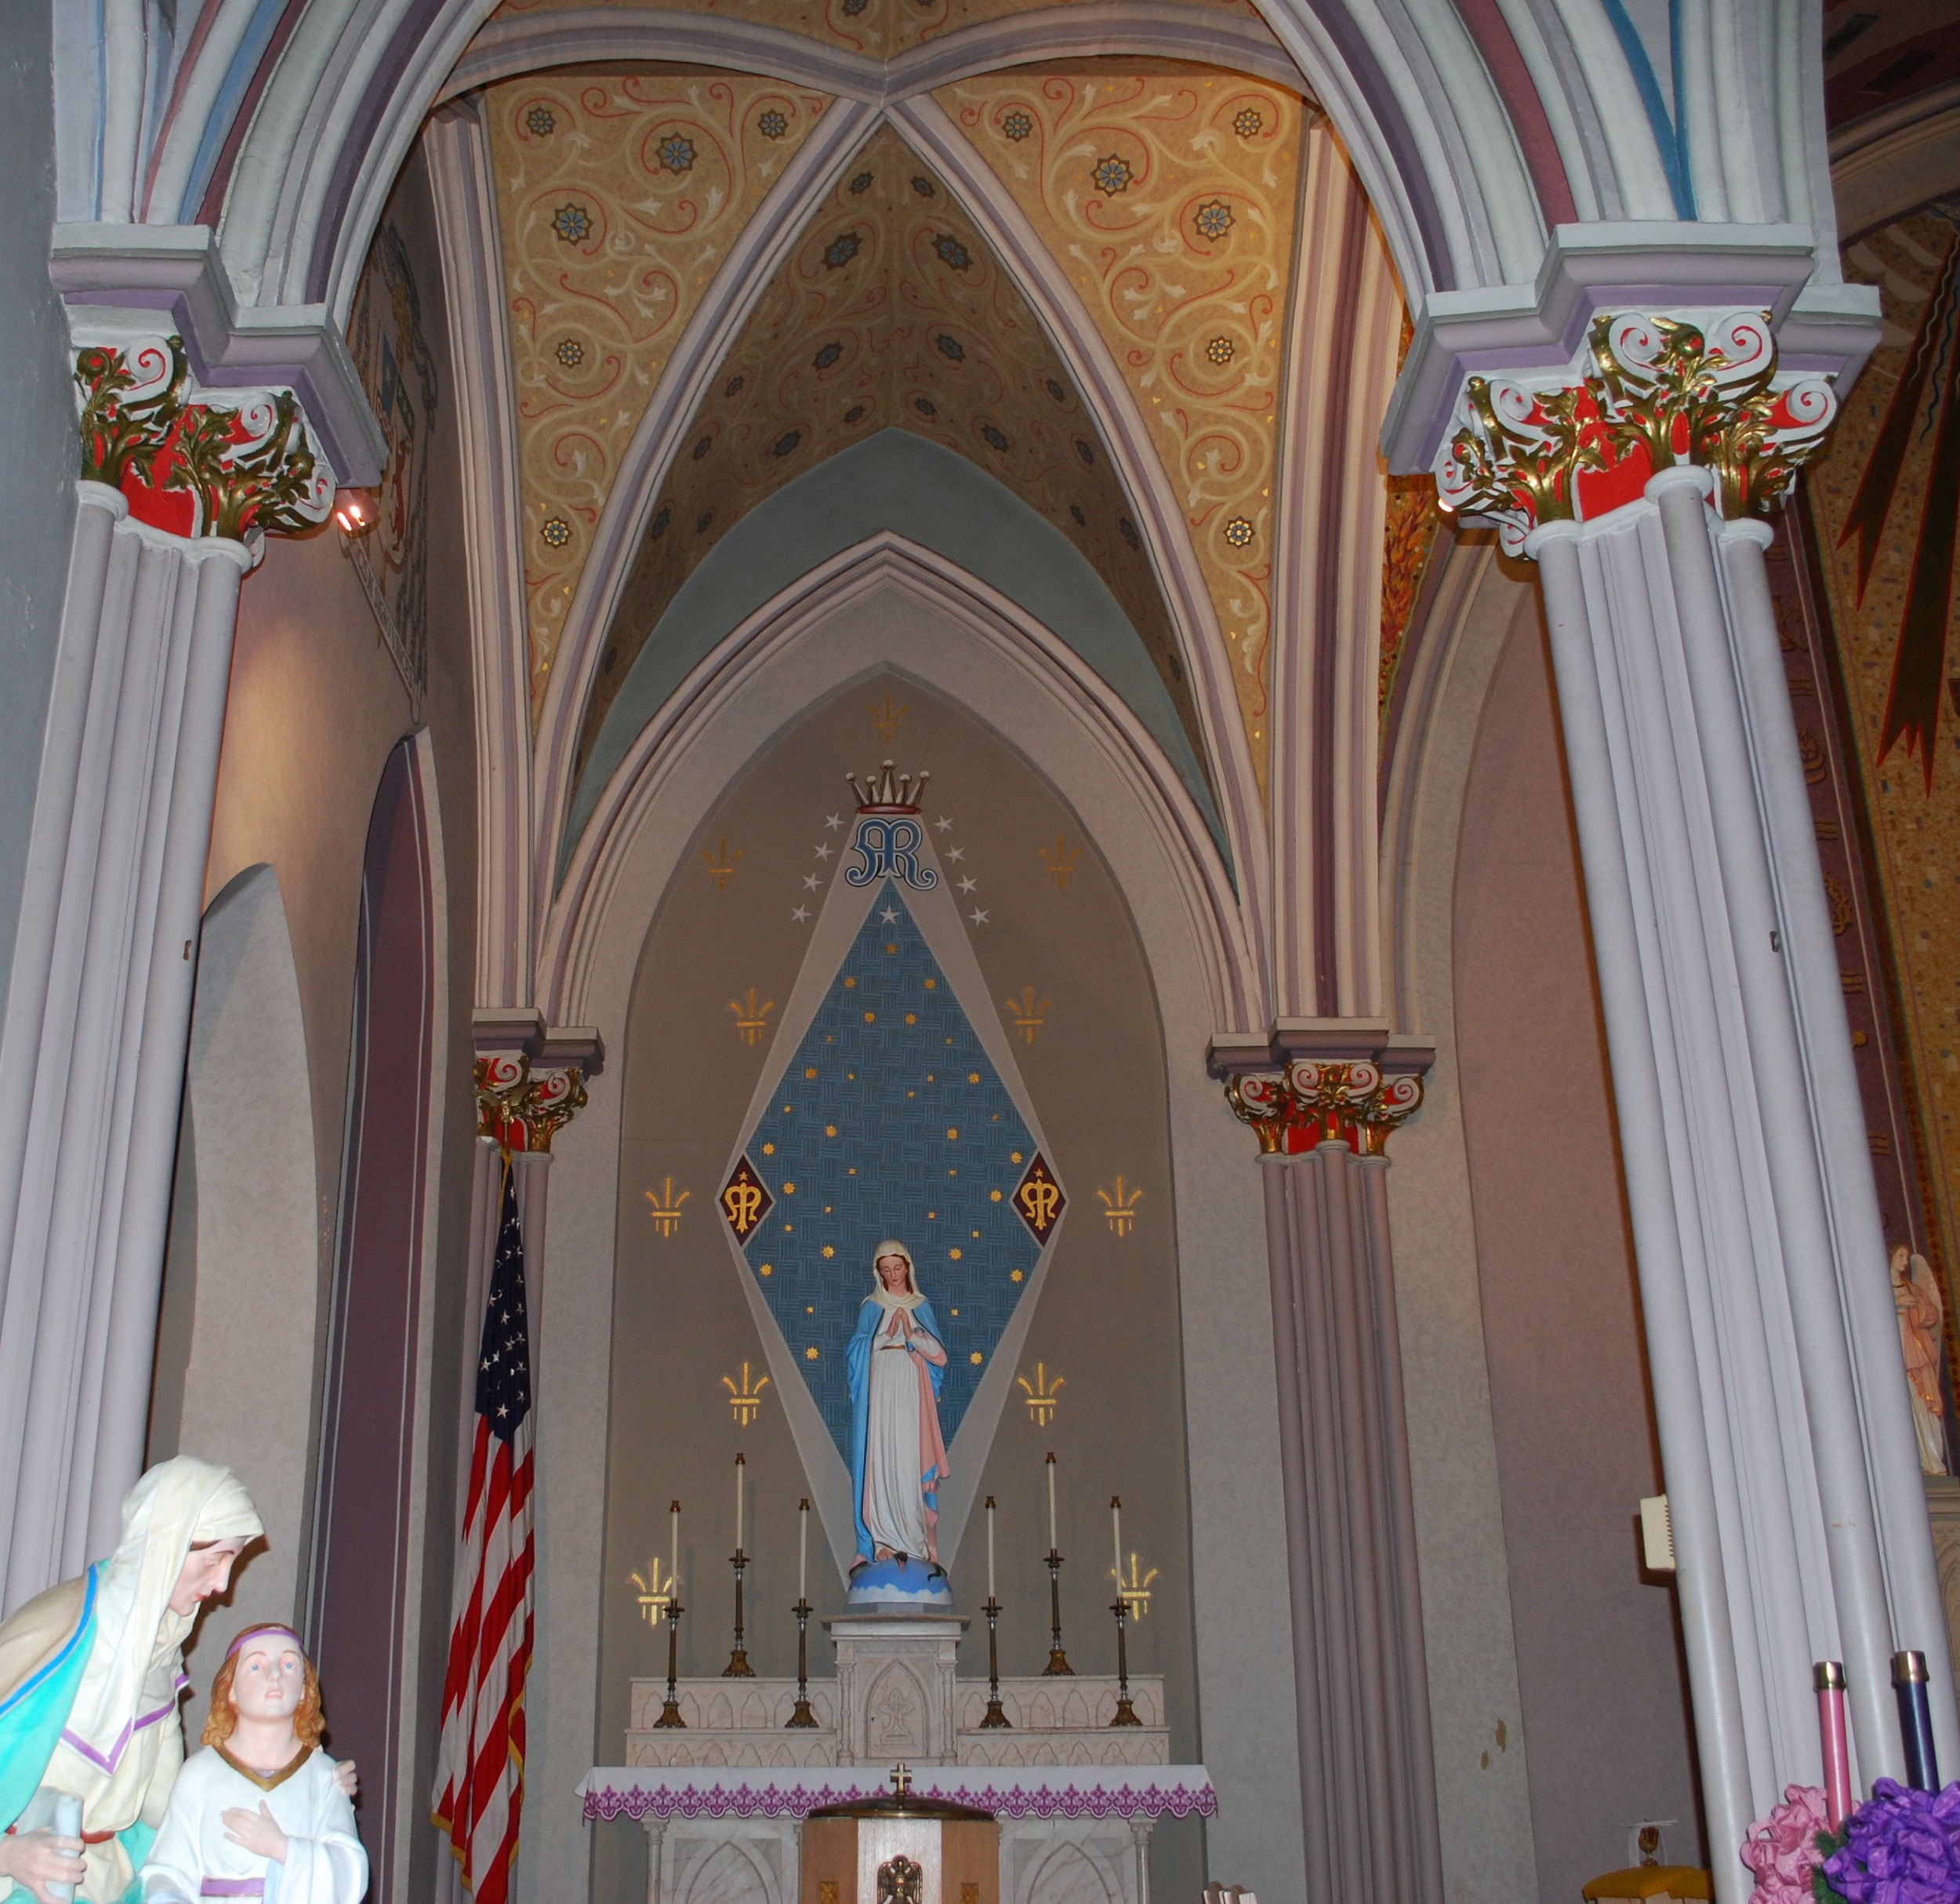 St. Charles Borrormeo Blessed Mother Ashland, PA